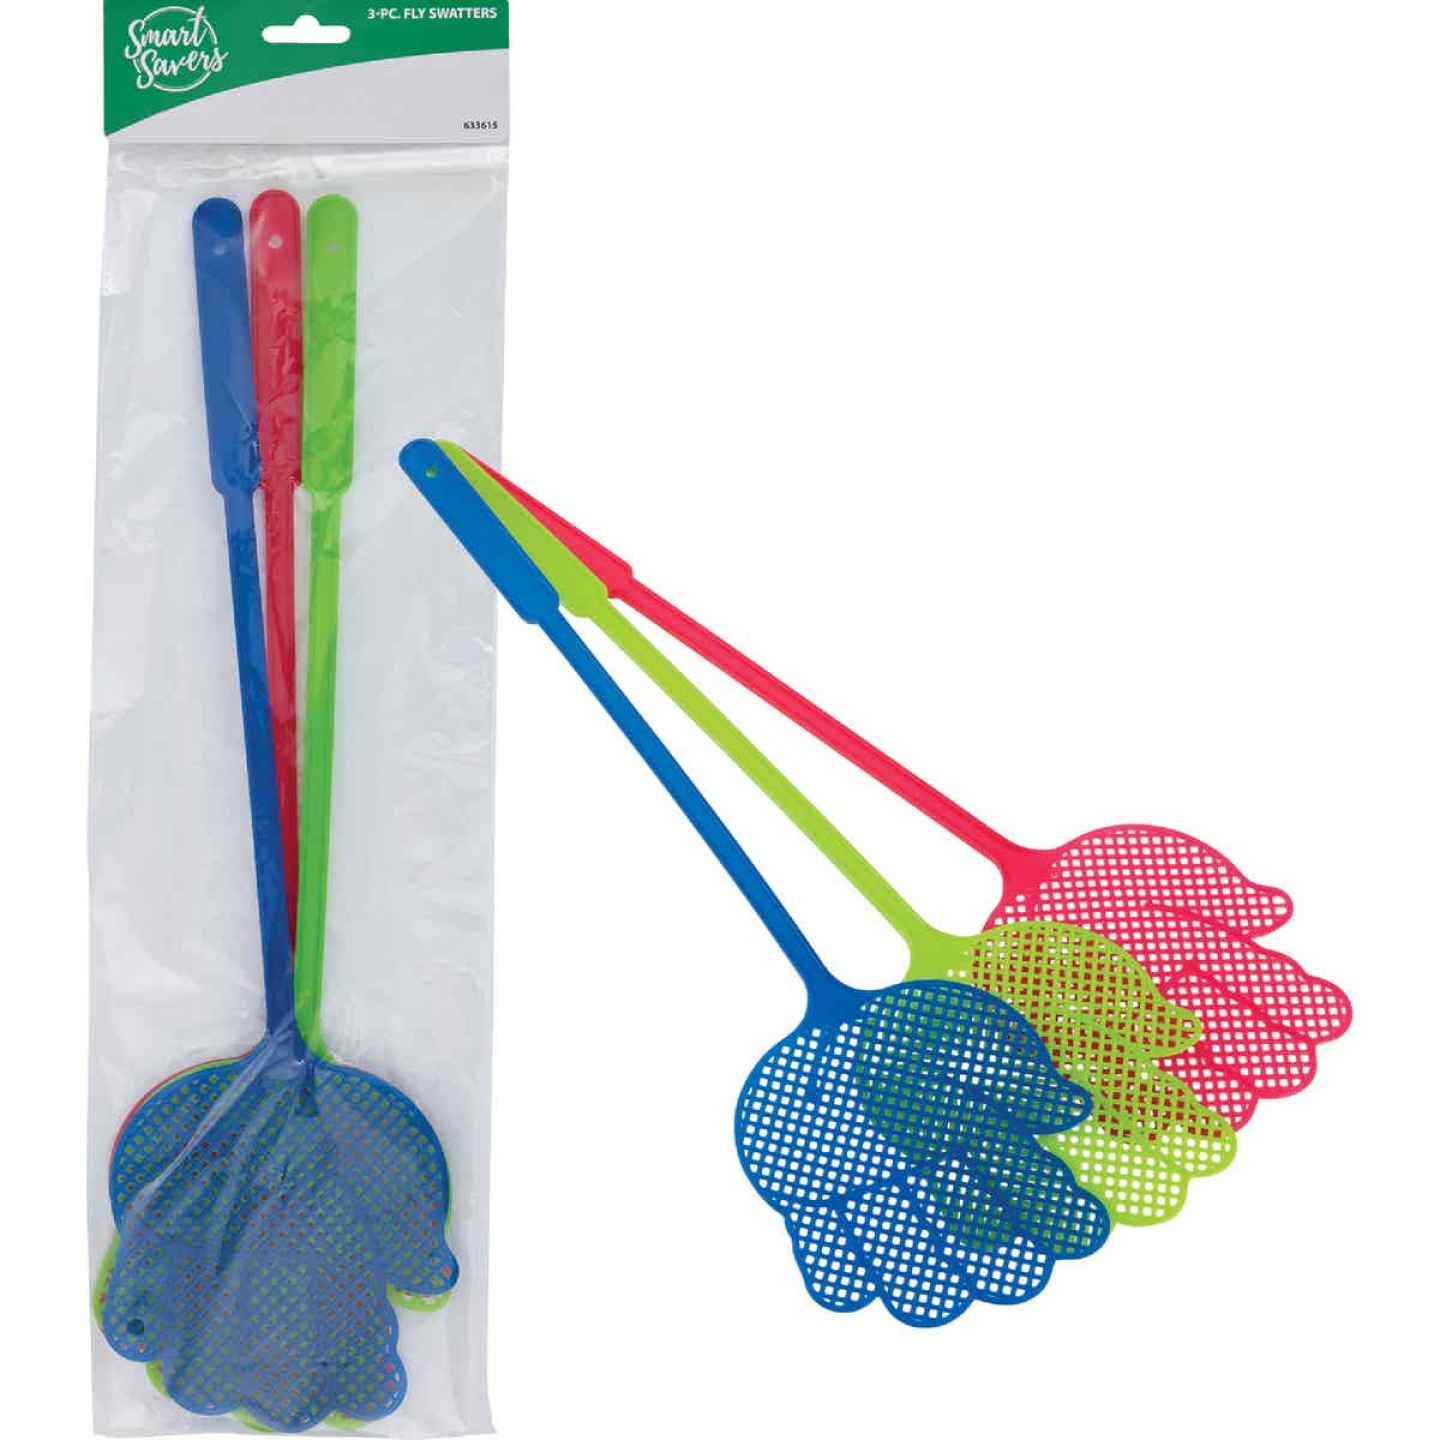 Smart Savers 5 In. x 4.7 In. Plastic Fly Swatter (3-Pack) Image 1